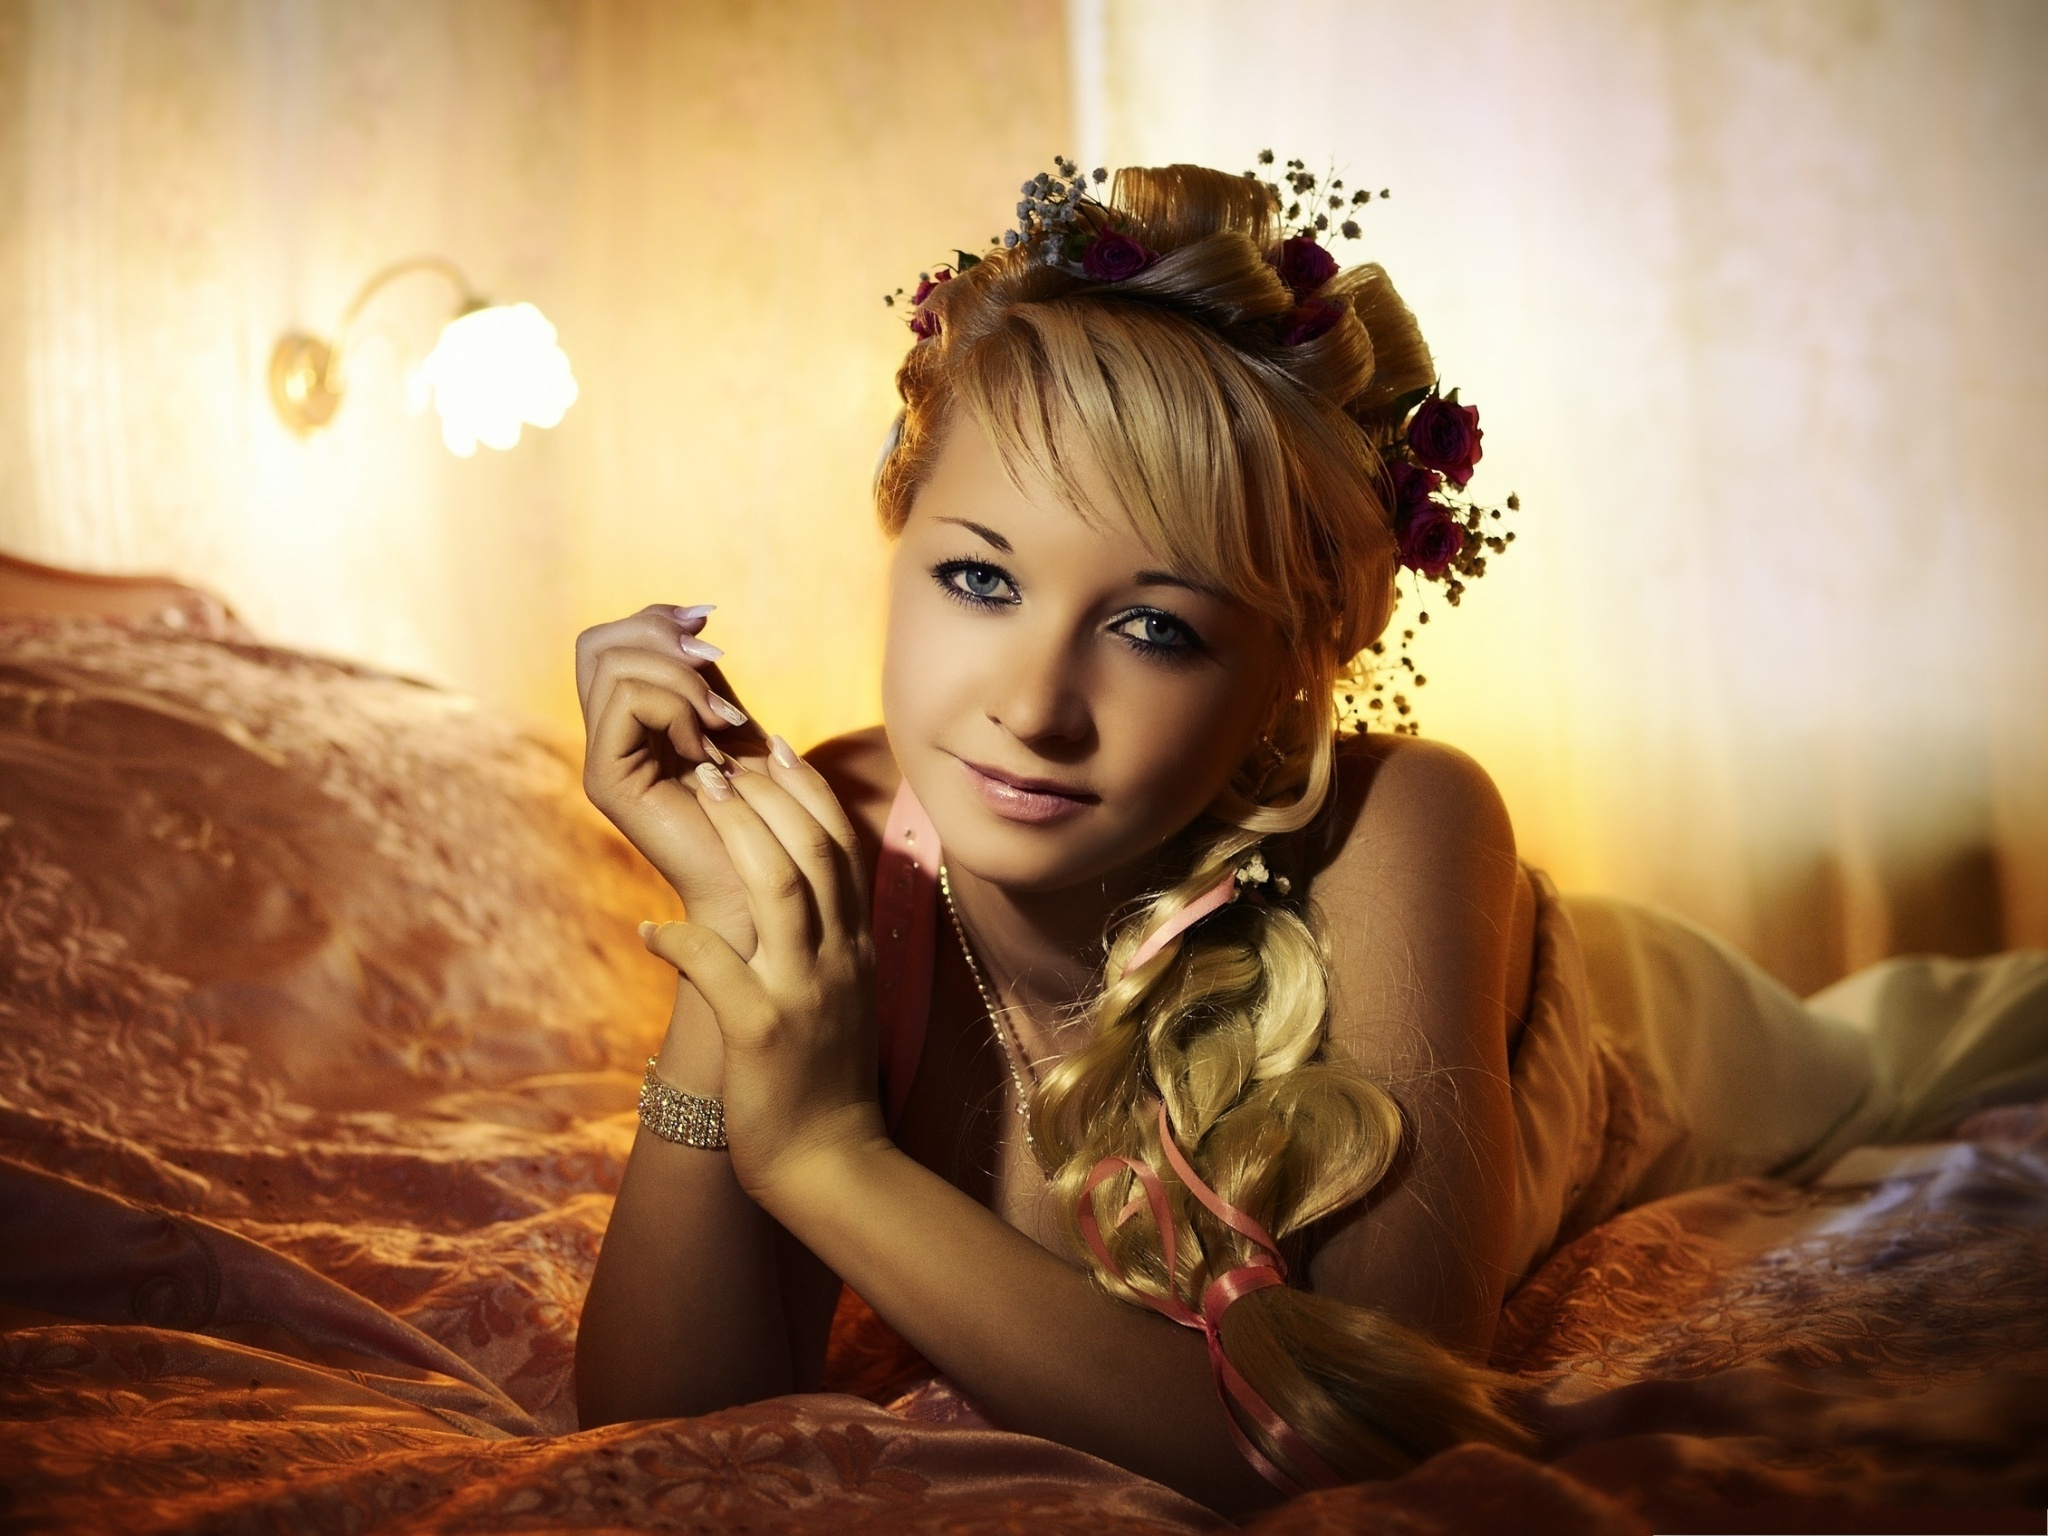 beautiful girls picture blonde girl lying like princess